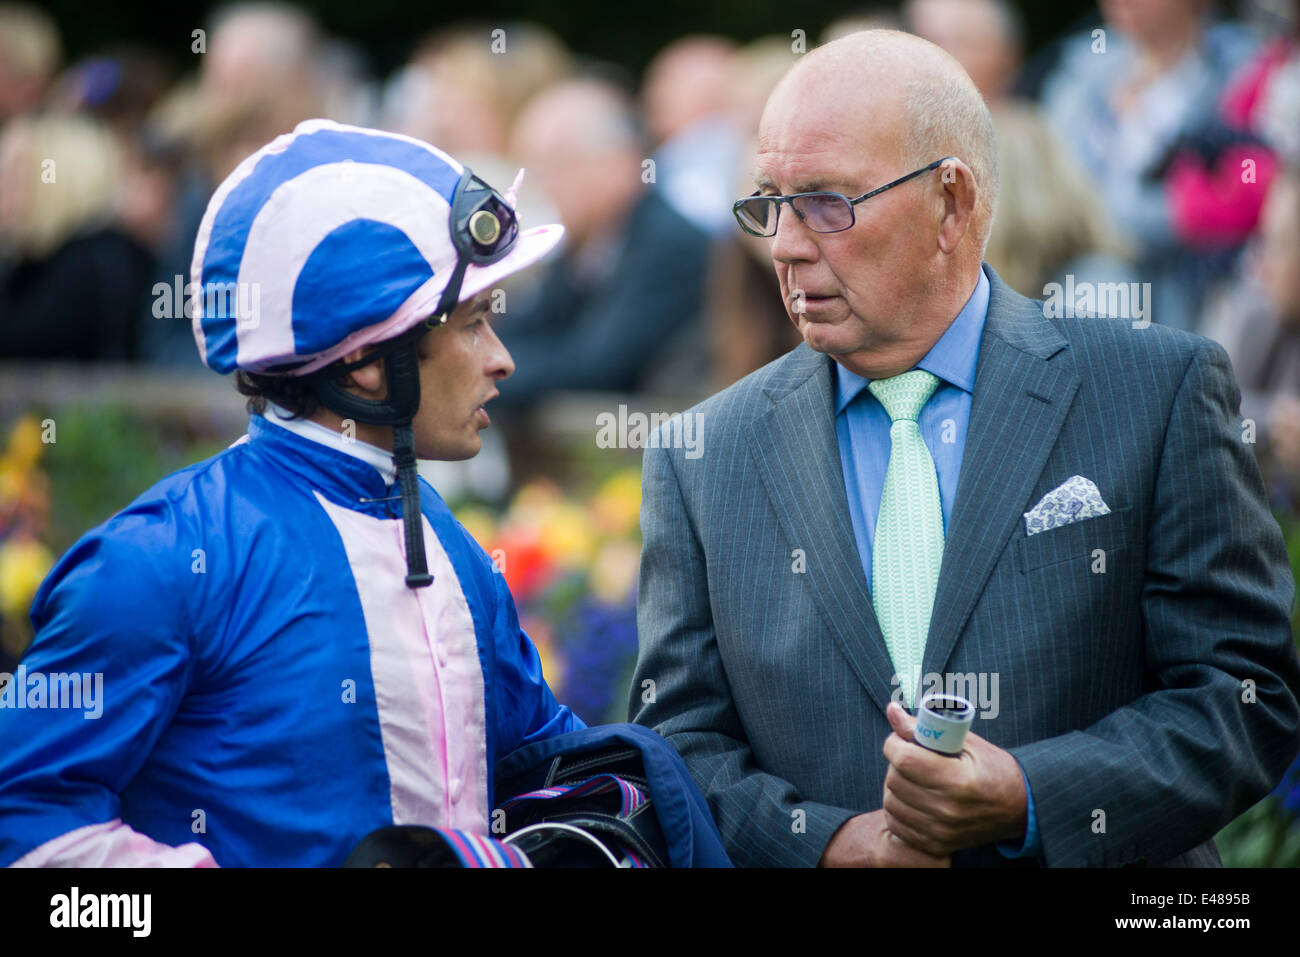 Jockey Silvestre De Sousa talks to owner Newmarket Racecourse - Stock Image